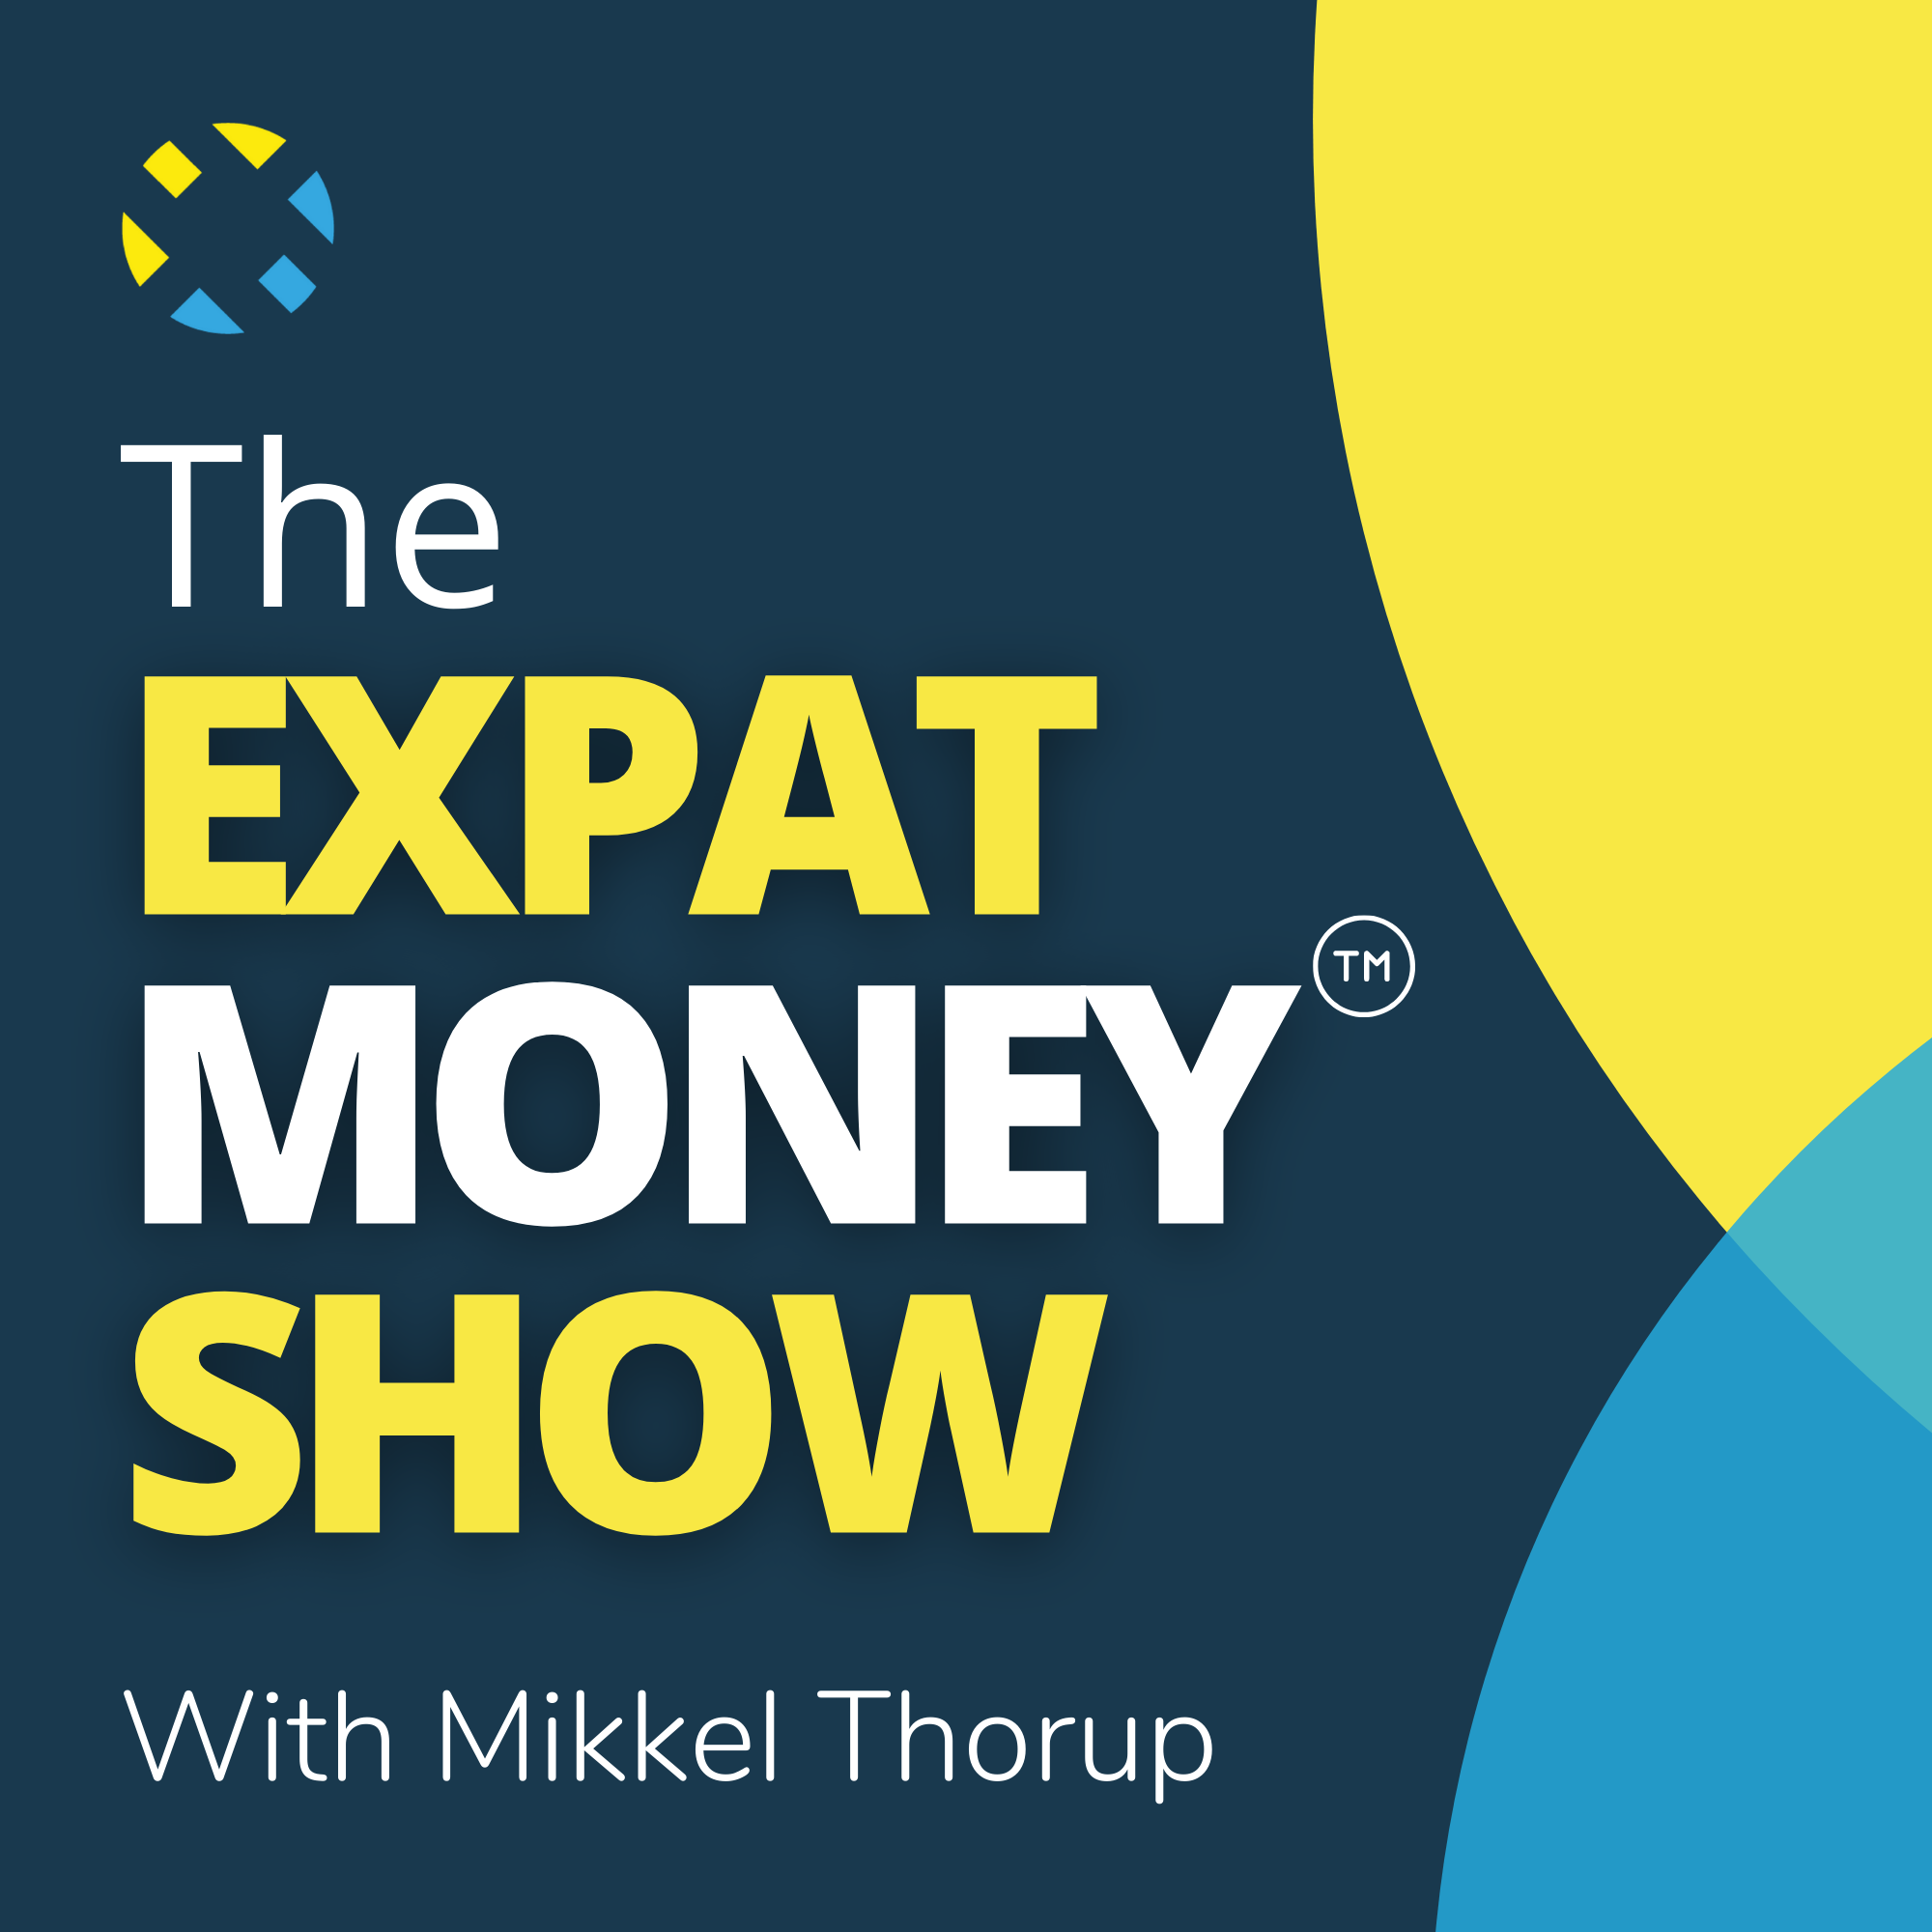 Artwork for podcast The Expat Money Show - With Mikkel Thorup